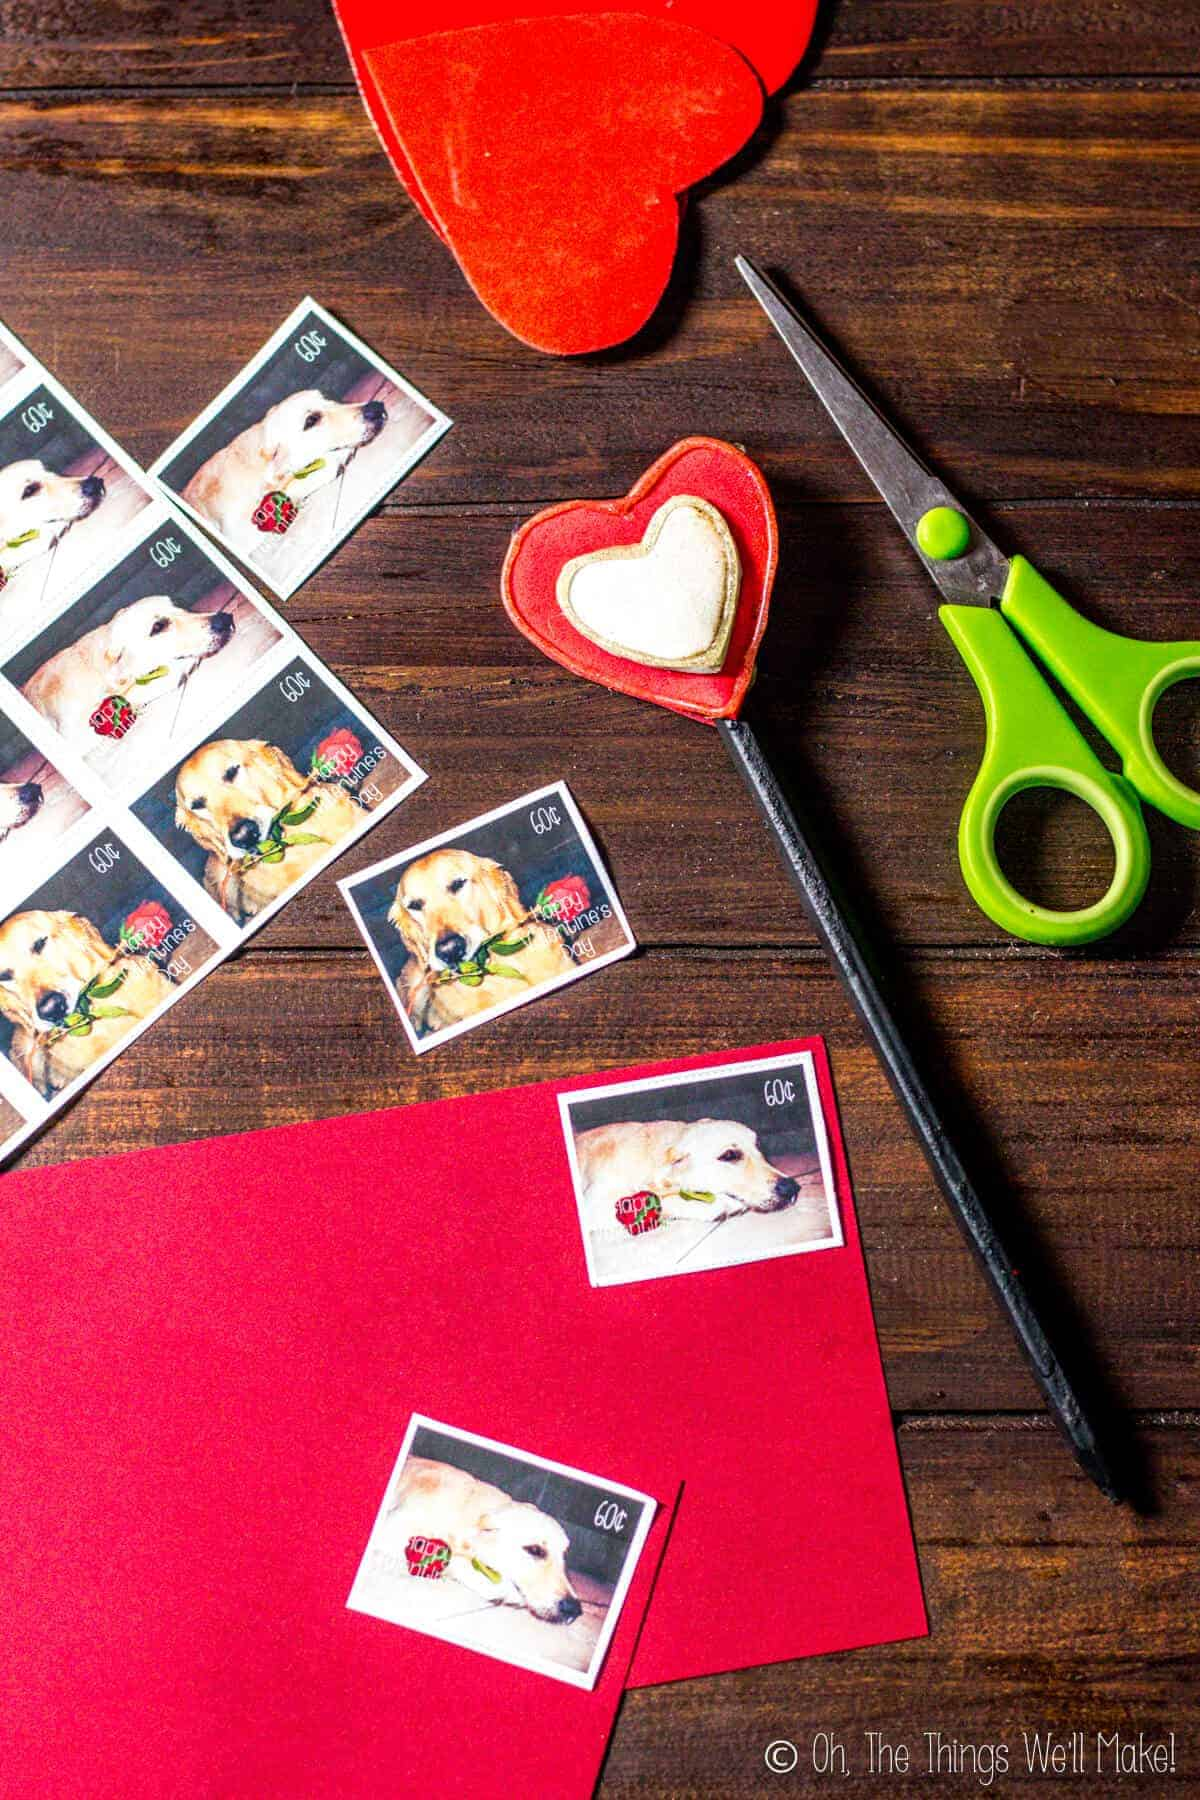 Fun Valentine's day postage stamps being stuck on valentines